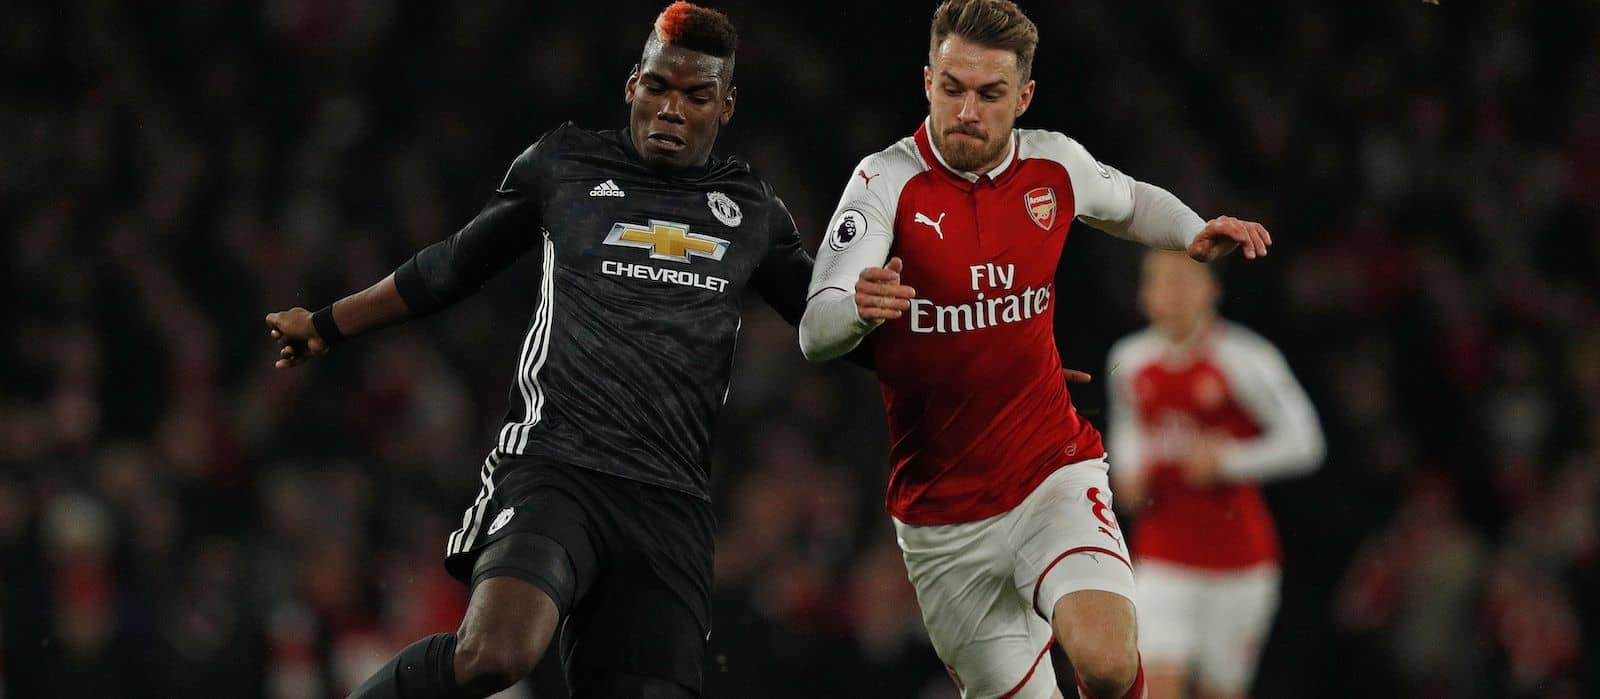 Paul Pogba produces decisive display against Arsenal despite late red card